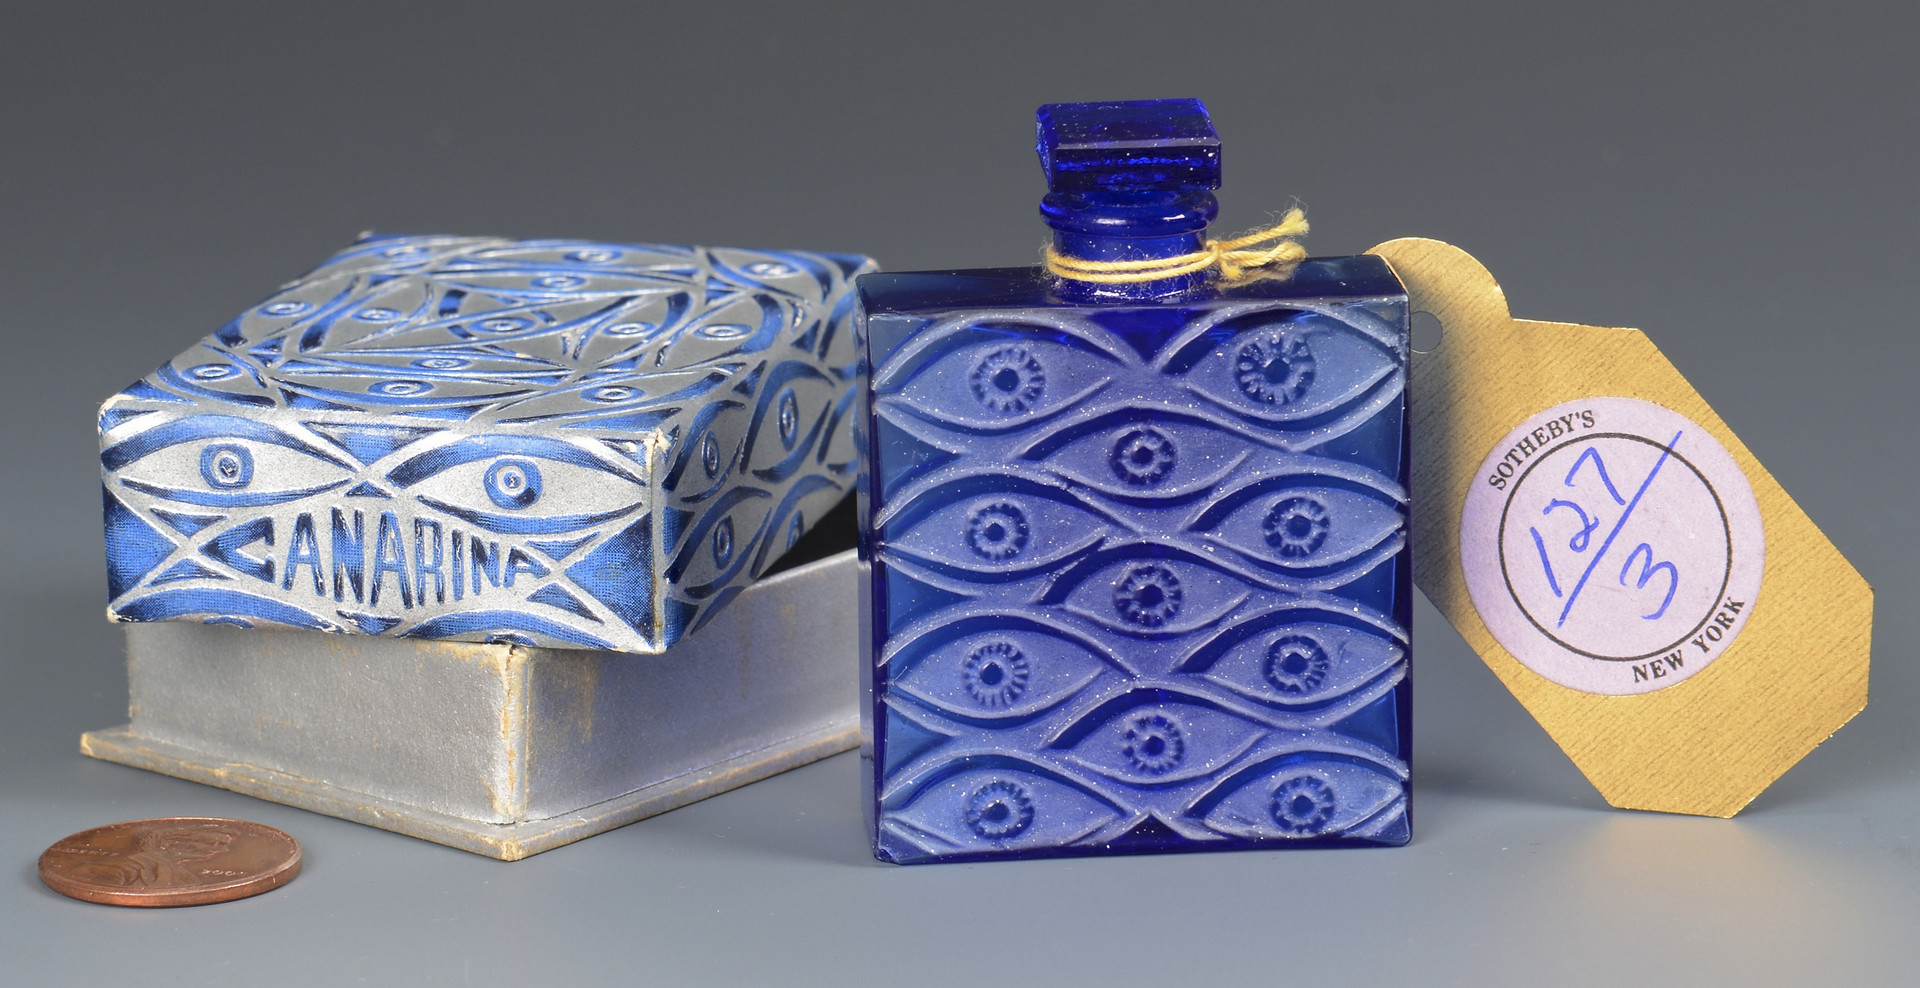 Lot 163: R. Lalique Canarina Perfume Bottle